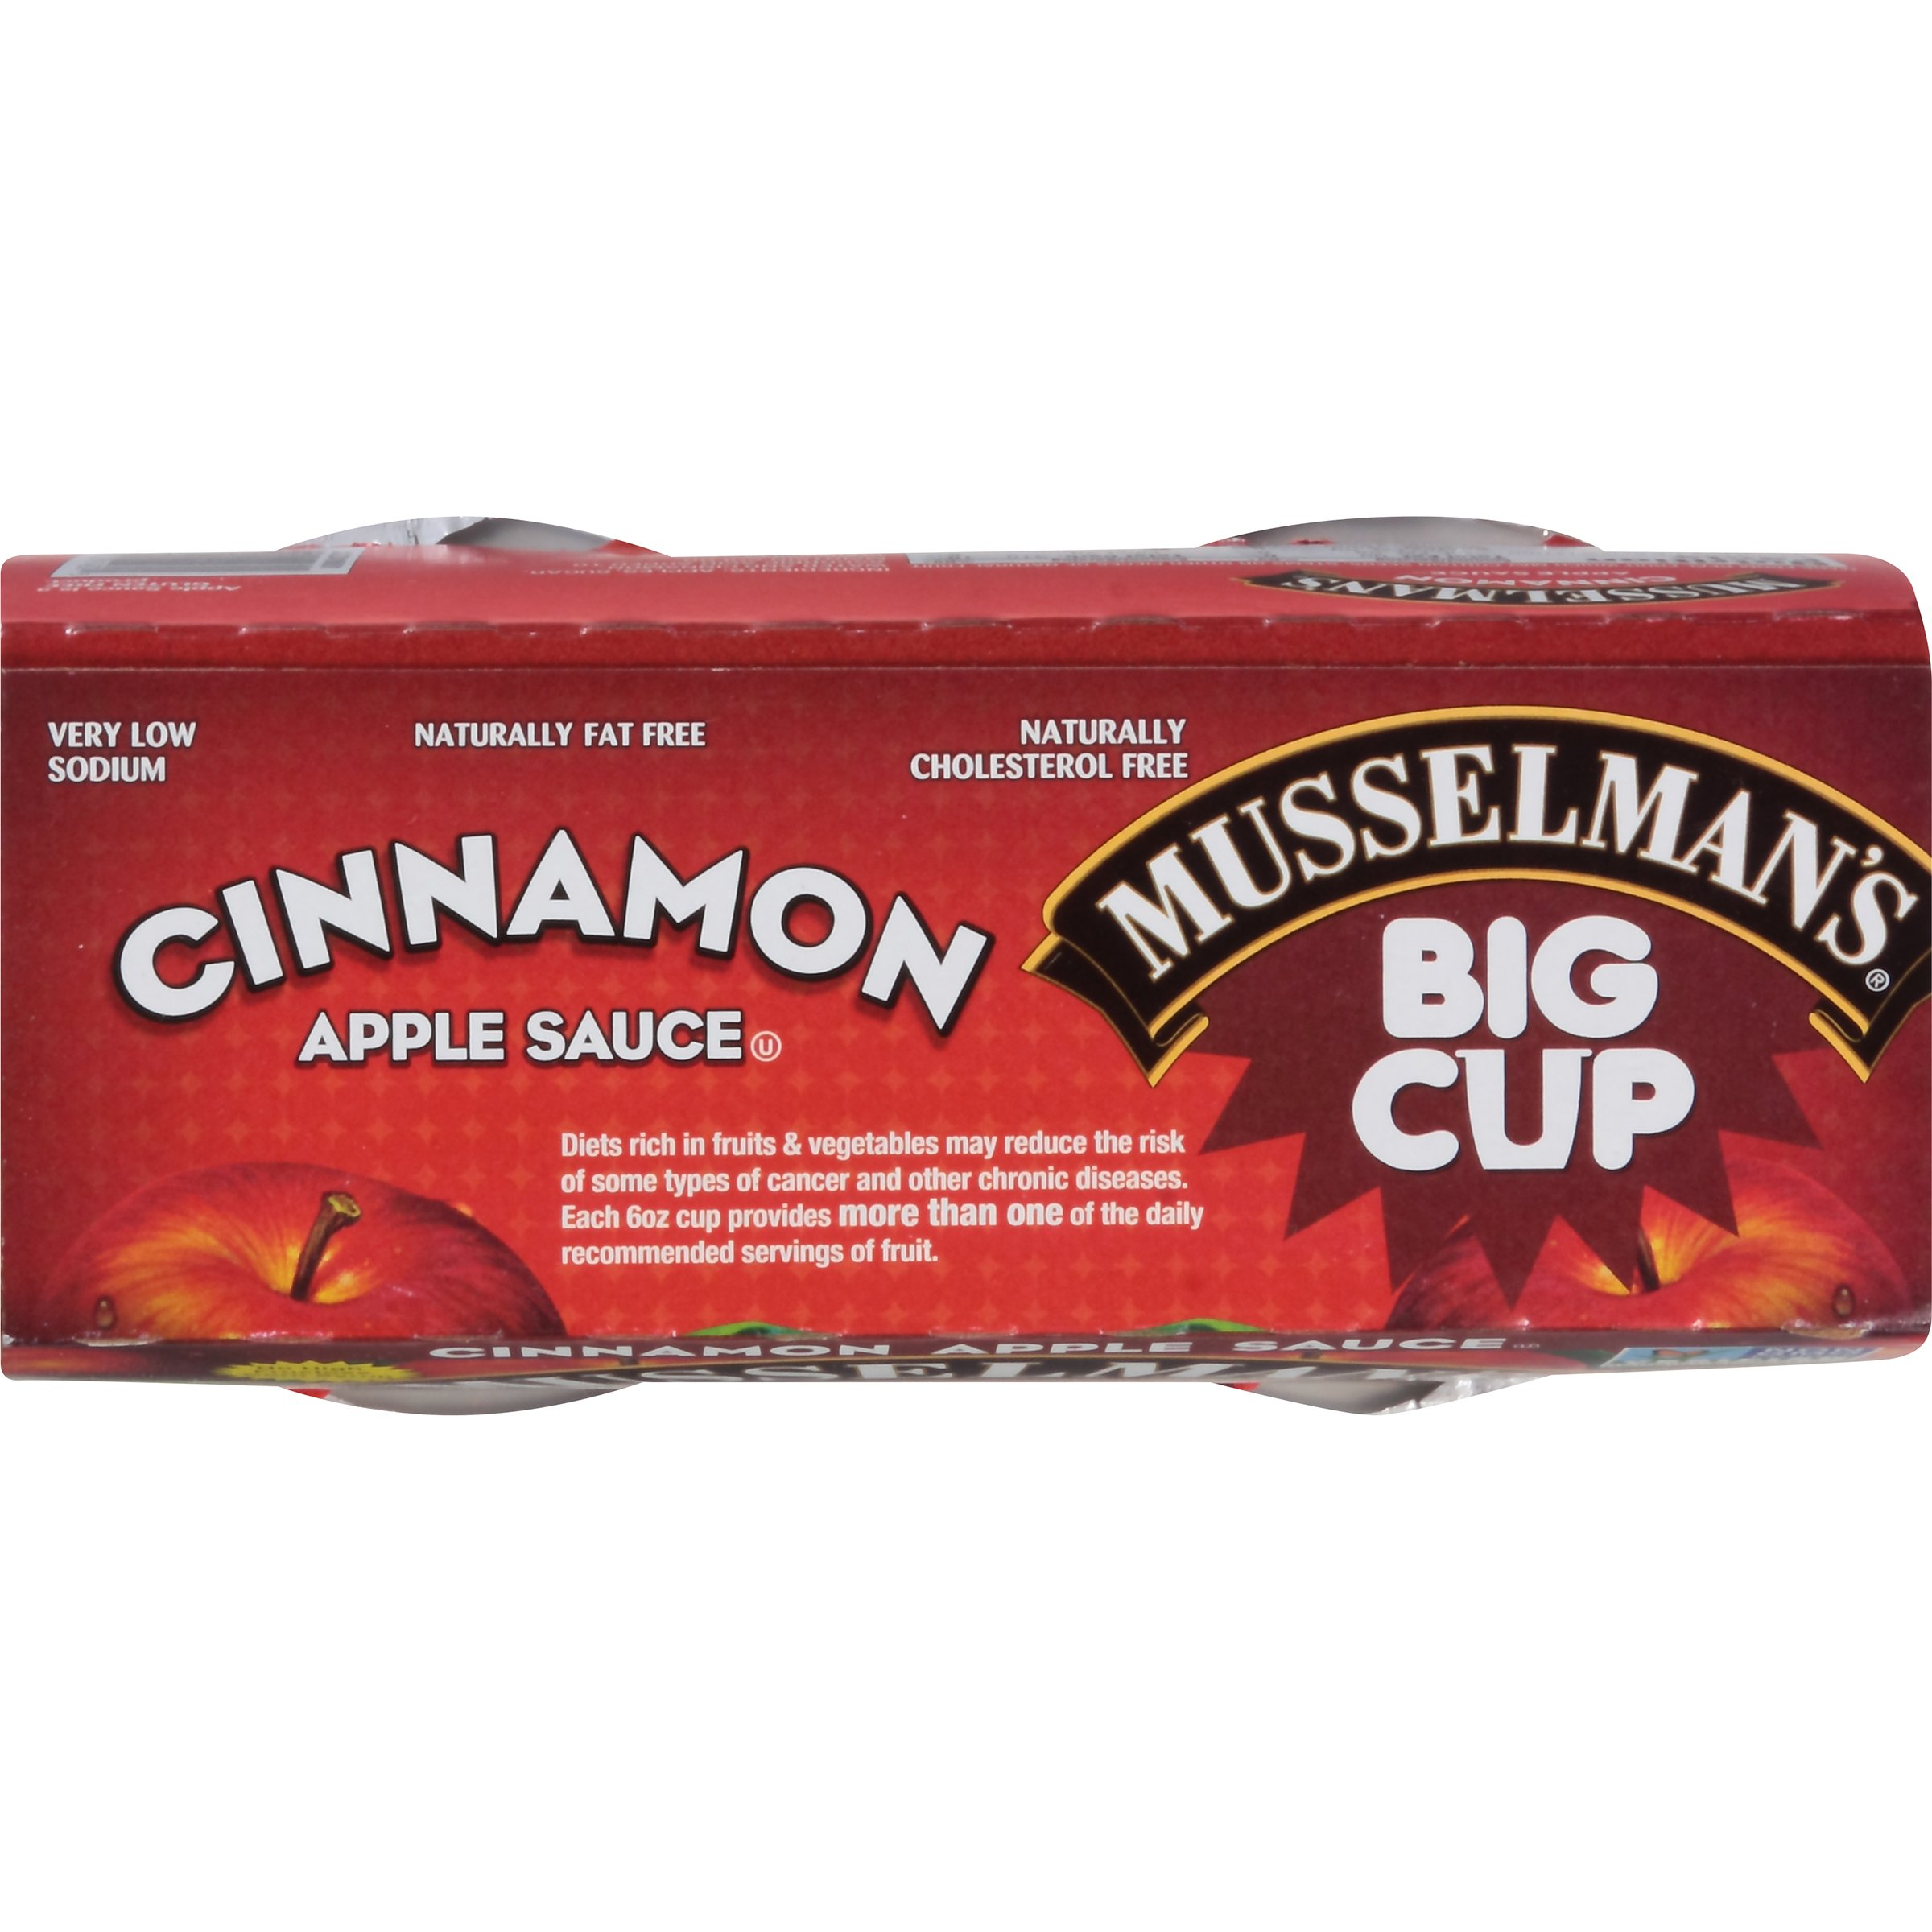 Musselman's Big Cup Cinnamon Apple Sauce, 6 Ounce (Pack of 12)